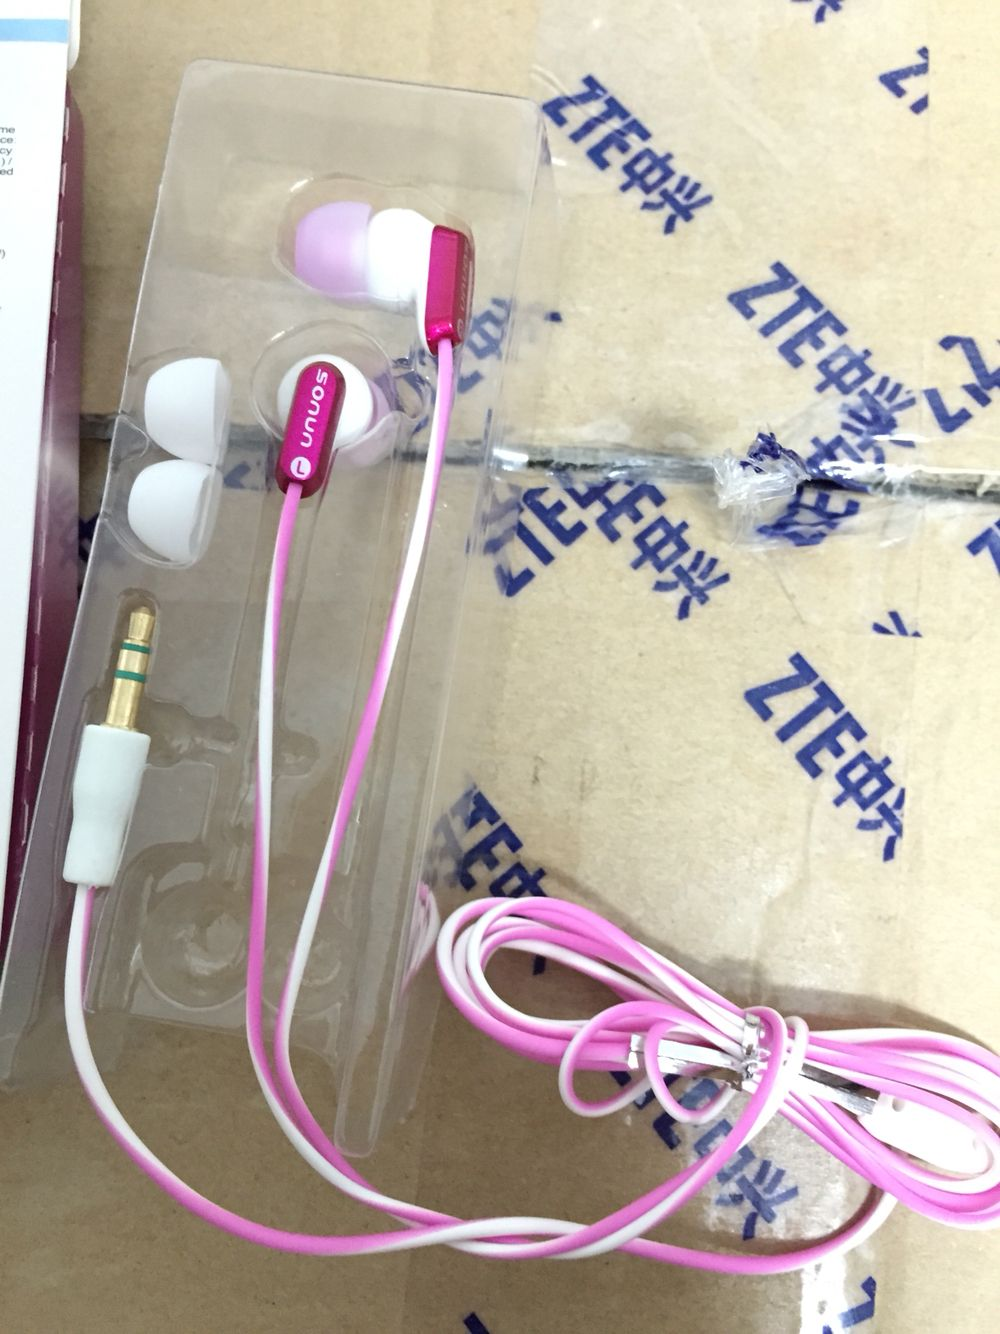 """""""SONUN"""" Headphone 80000PCS #headphone #headset #color #AUDIO #earphones #kit #minispeaker #earbud #sound #audio #stocklots #inventory #SALE #mobileaccessories #mobileaccessorize #exportimport #importexport #ksl #consumergoods #gifts #promotions #marketing #advertise #online #ebay #keesouleleccoltd #homeappliances #Chinawholesale #Chinaretail #Closeouts #bizinis #instacool #chilling #iphone6 #charger #pc #usbcable #keesoul #cooler #travel #accessories #SONUN #fashion #outdoor #kits #brunomars"""